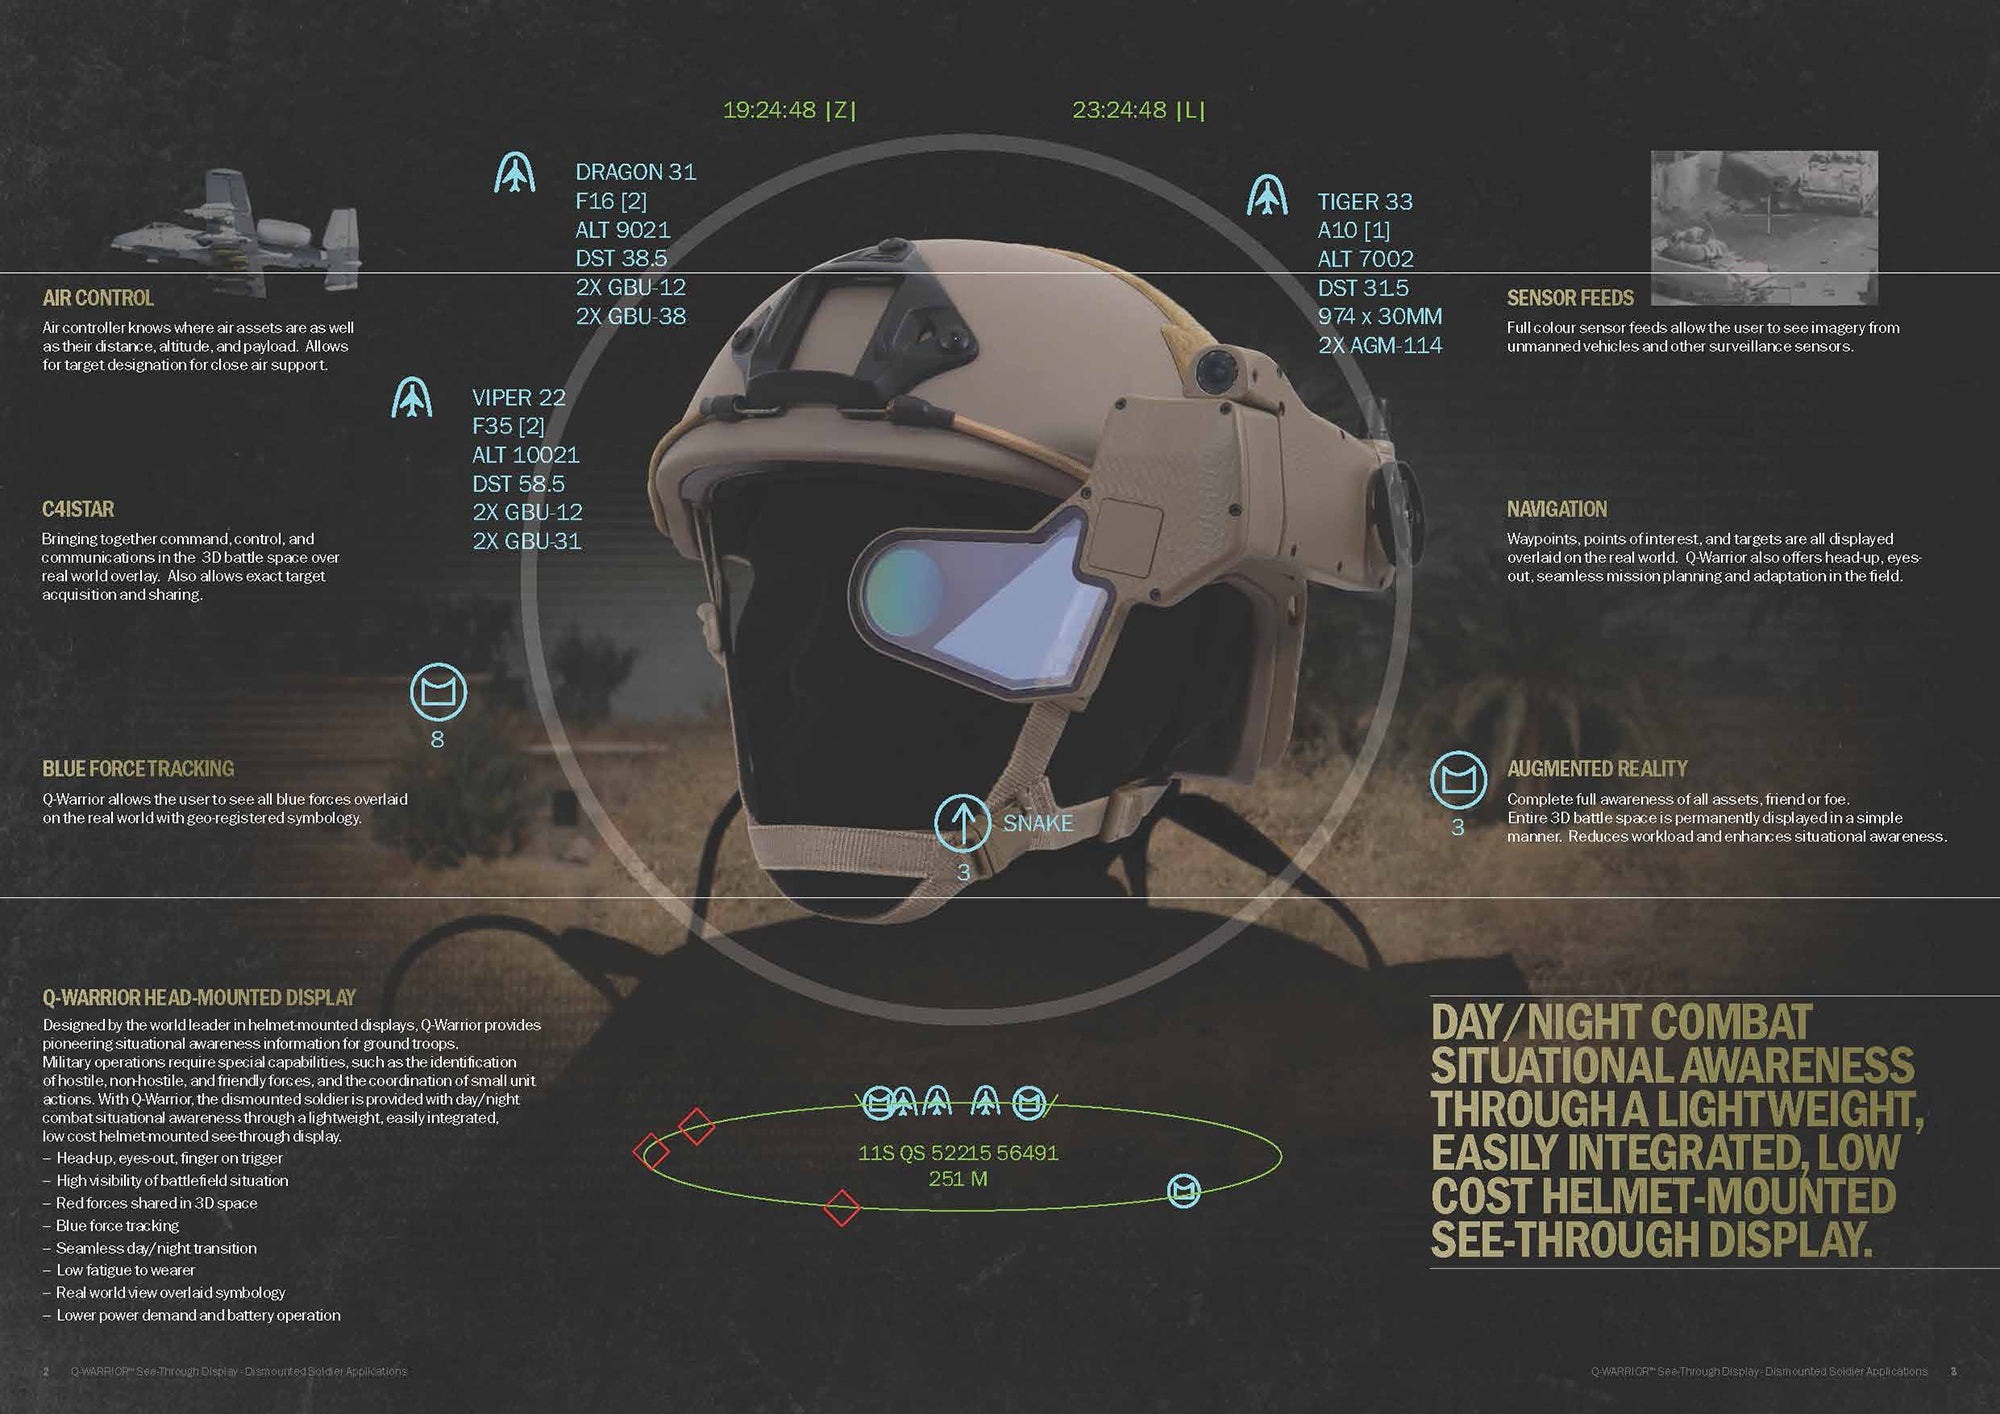 Monster Machines: This Battlefield Heads-Up Display Turns Troops Into Cyborg Soldiers